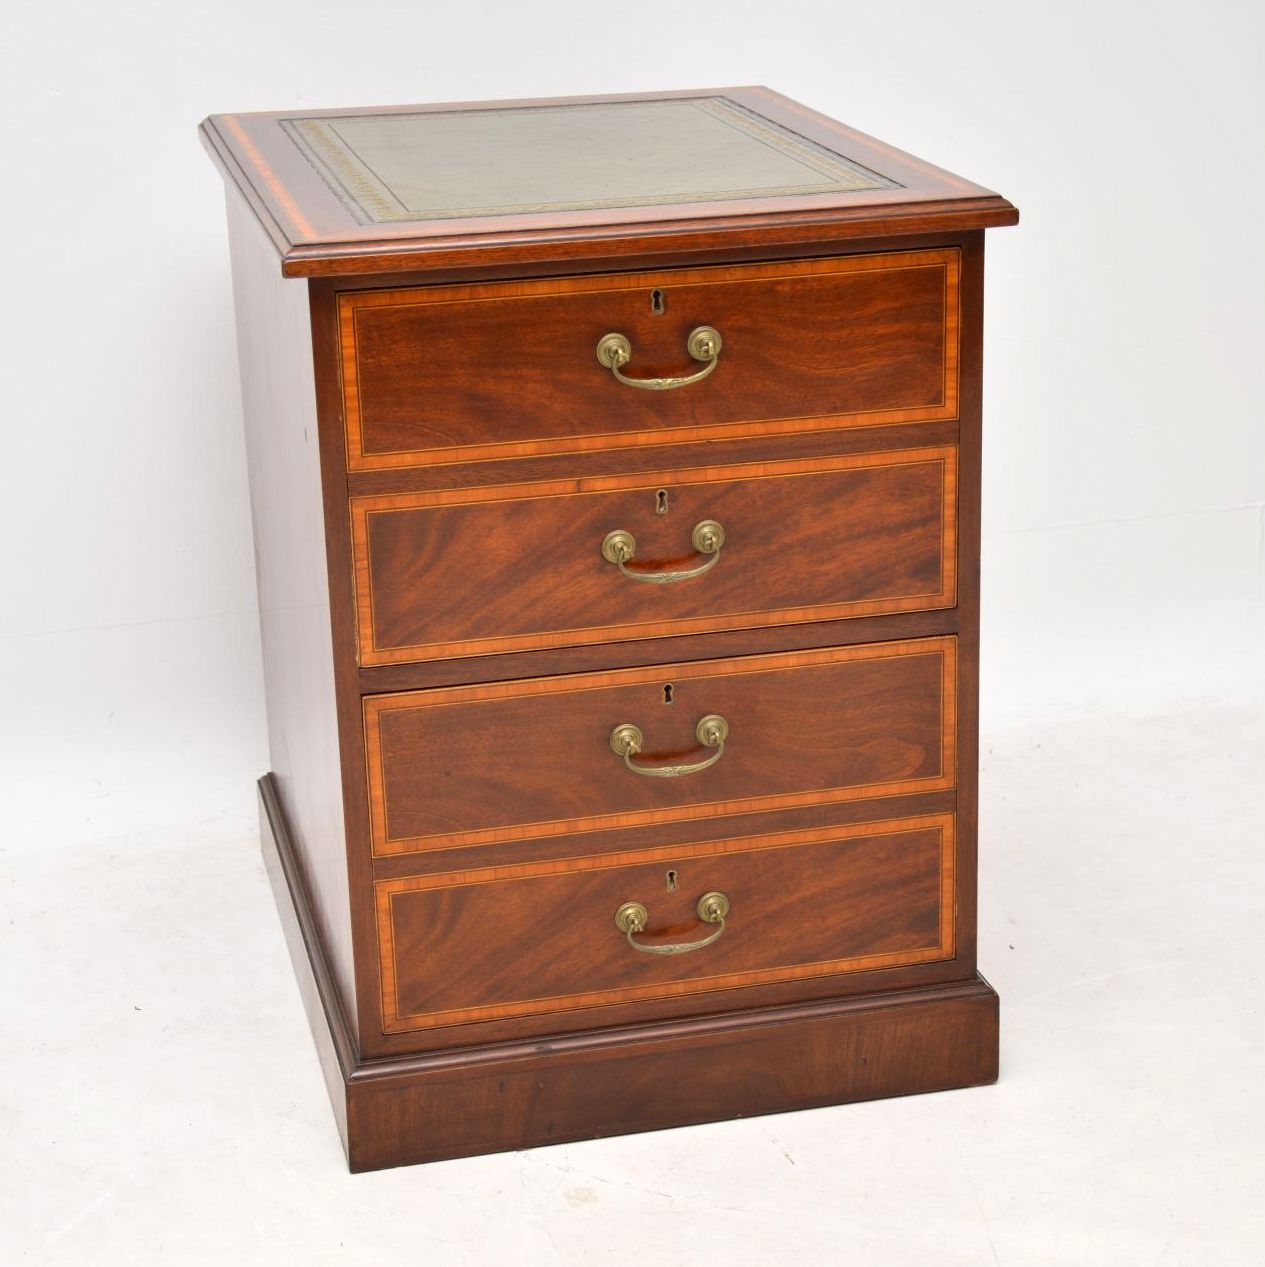 Antique Georgian Style Inlaid Mahogany Filing Chest of Drawers